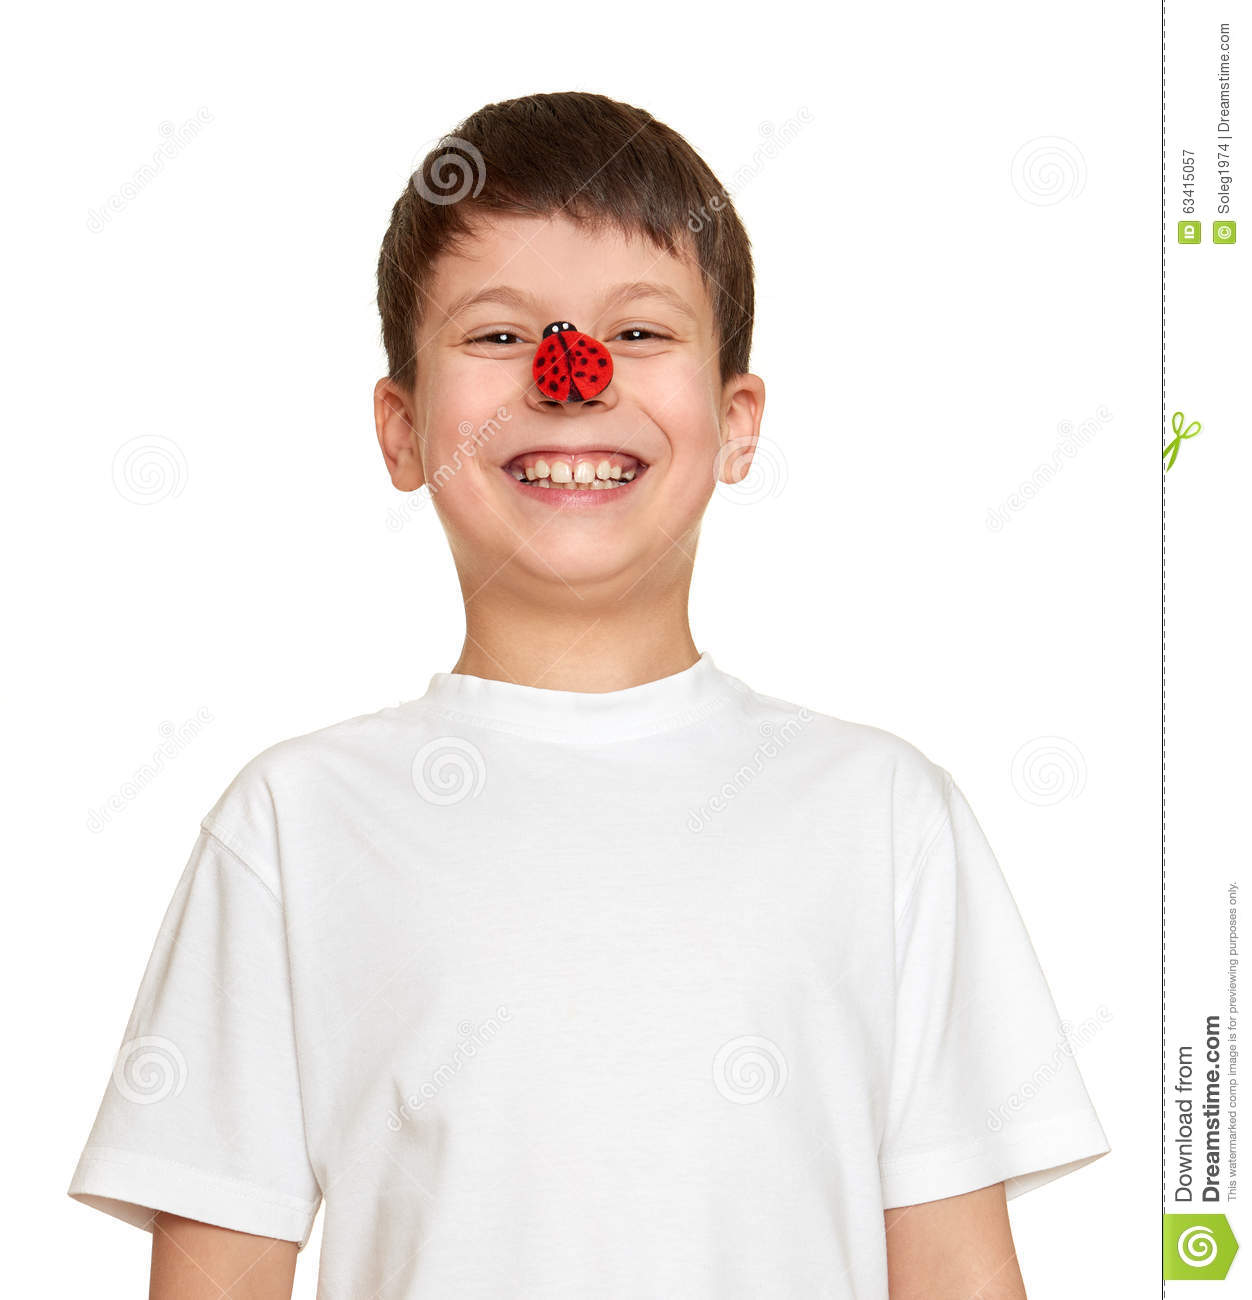 32baf525443 Boy with ladybug look on nose and make faces